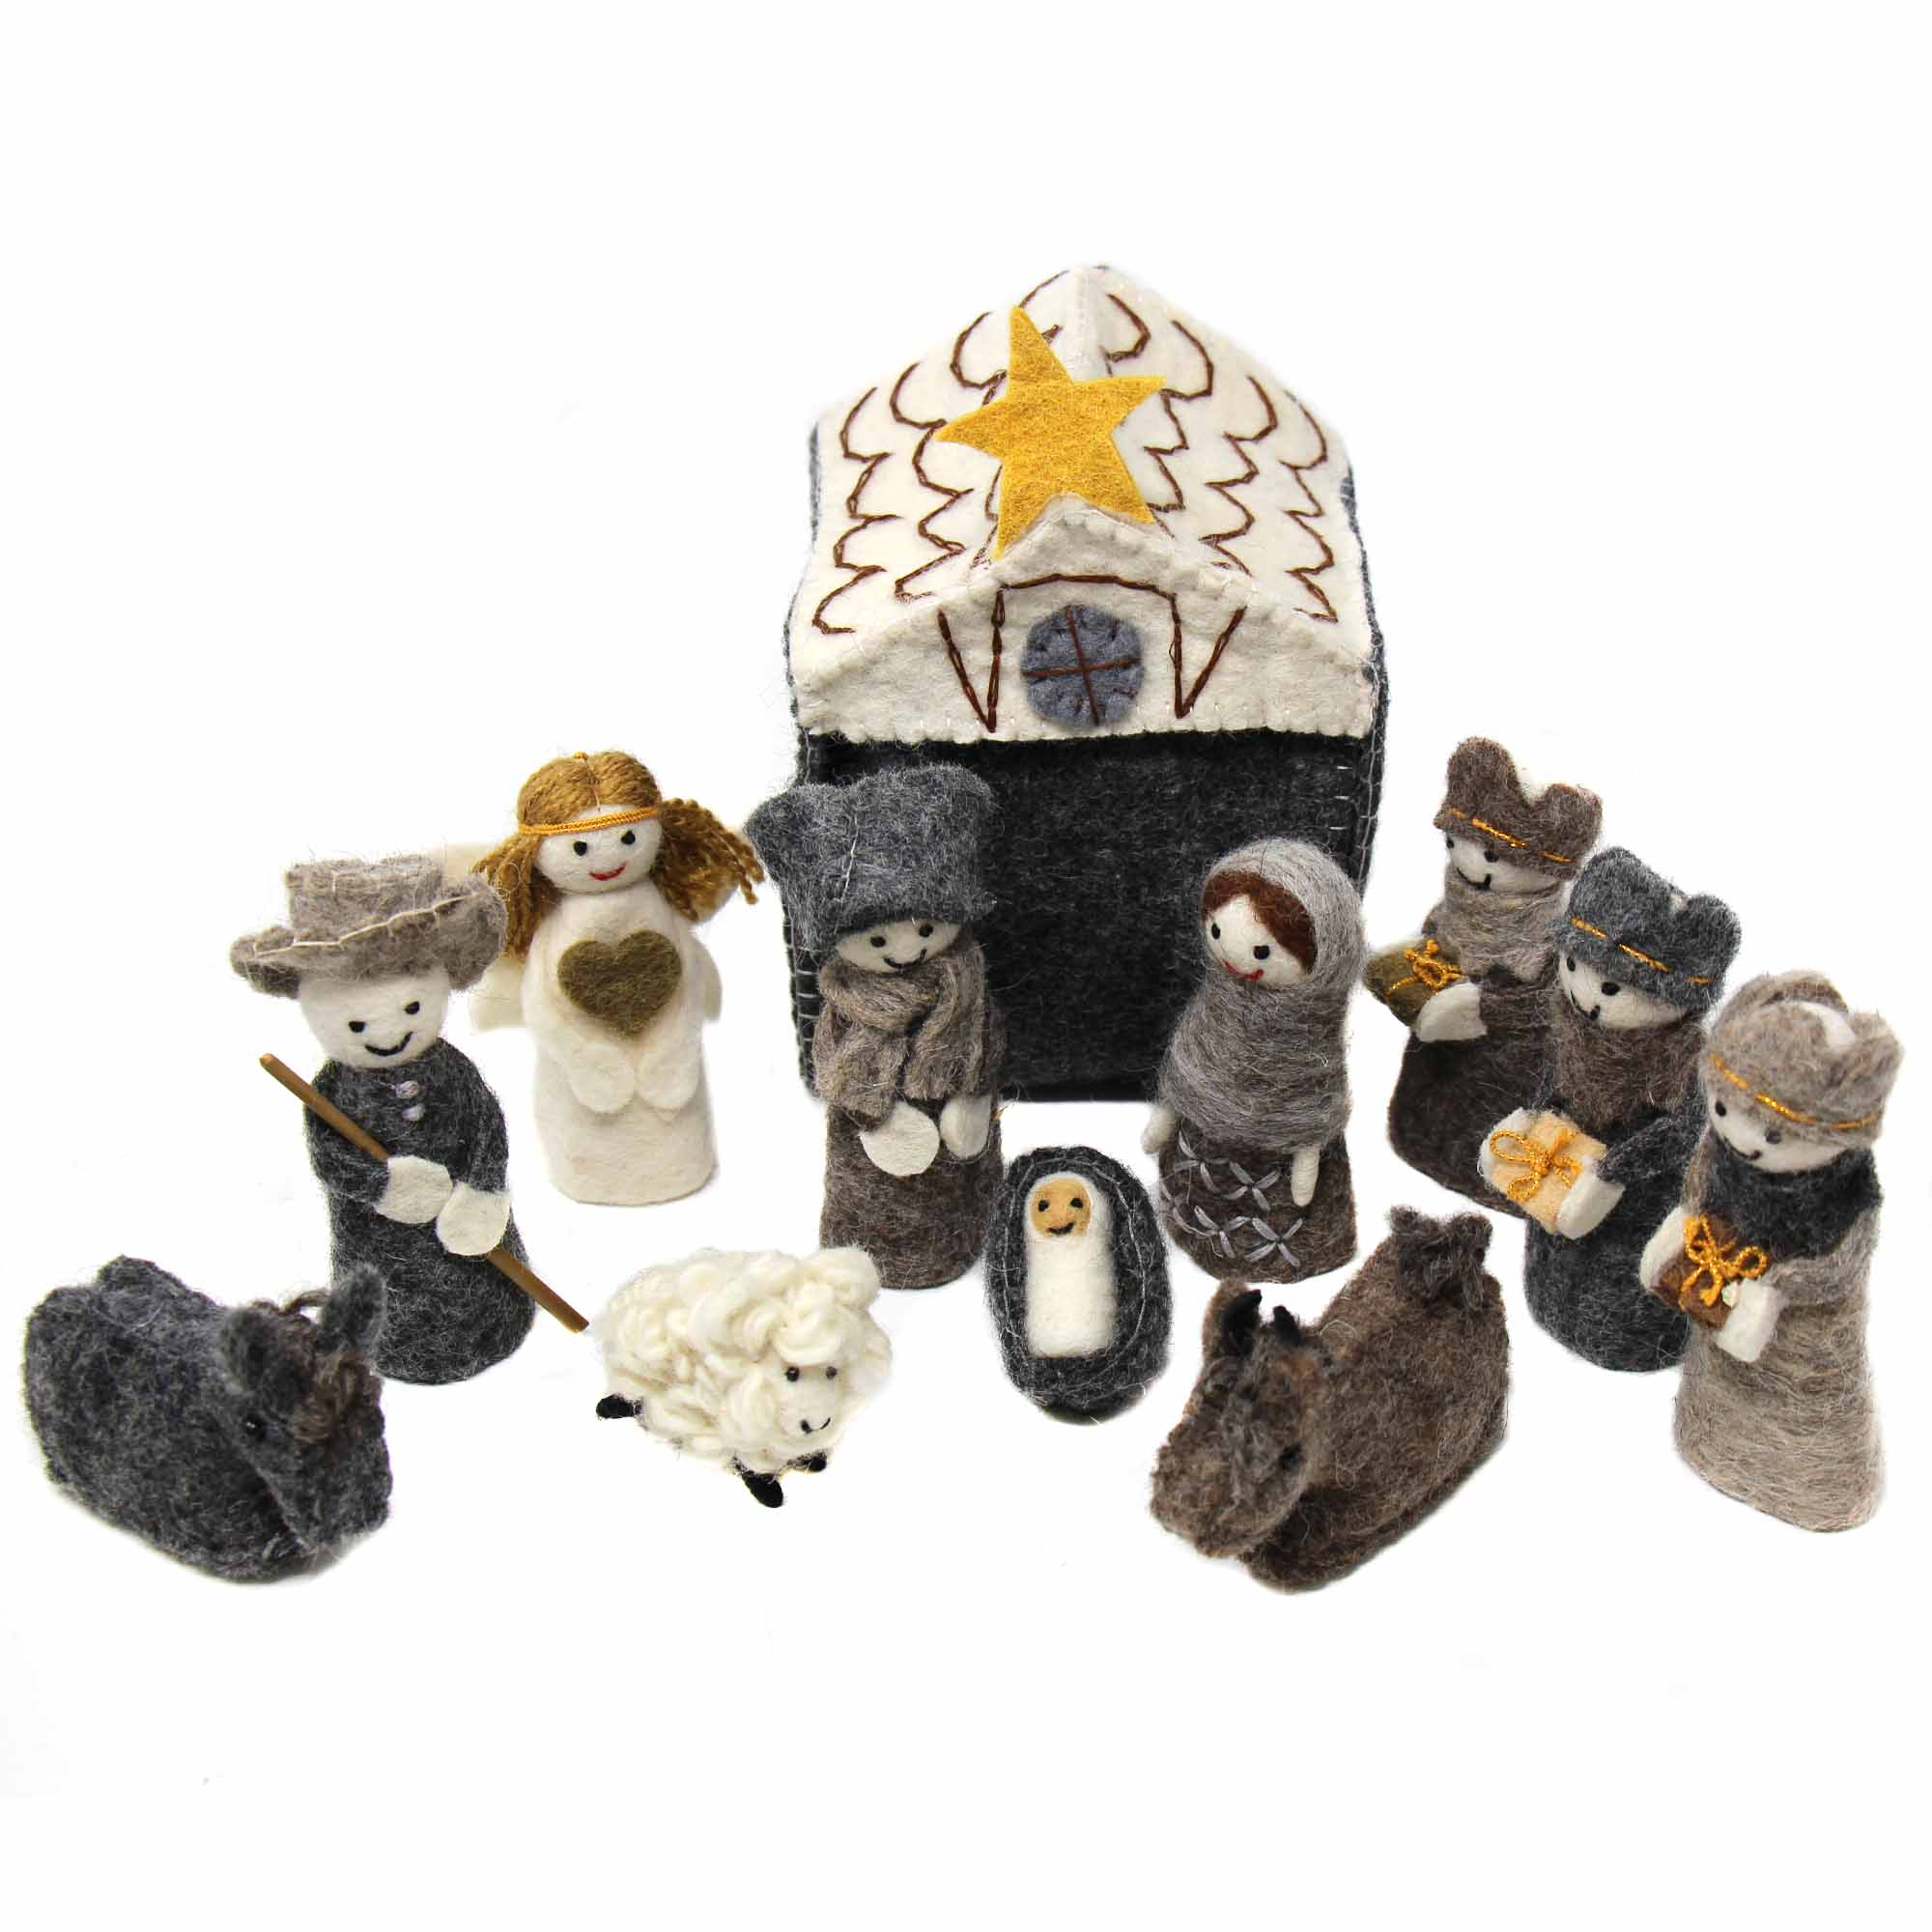 Hand-stitched Felt Nativity Set, 12 Piece Set with Storage